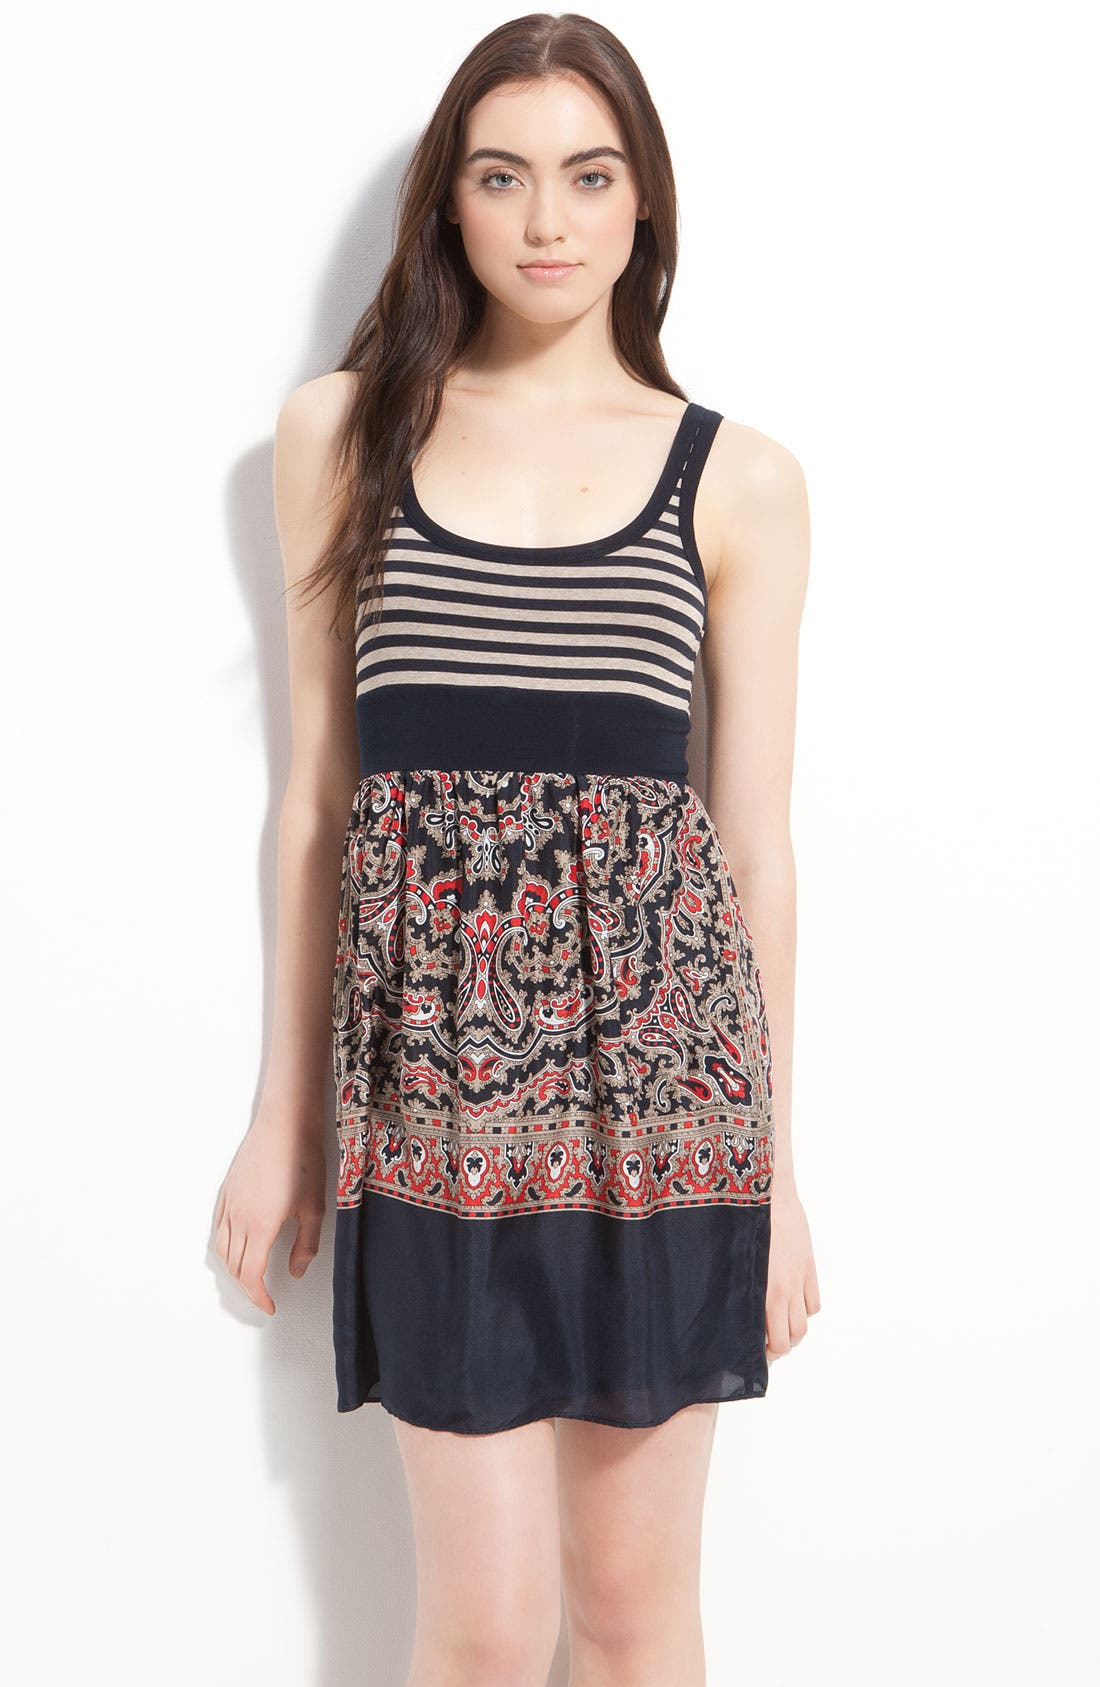 Main Image - Bailey 44 'Island Fever' Stripe & Scarf Print Tank Dress